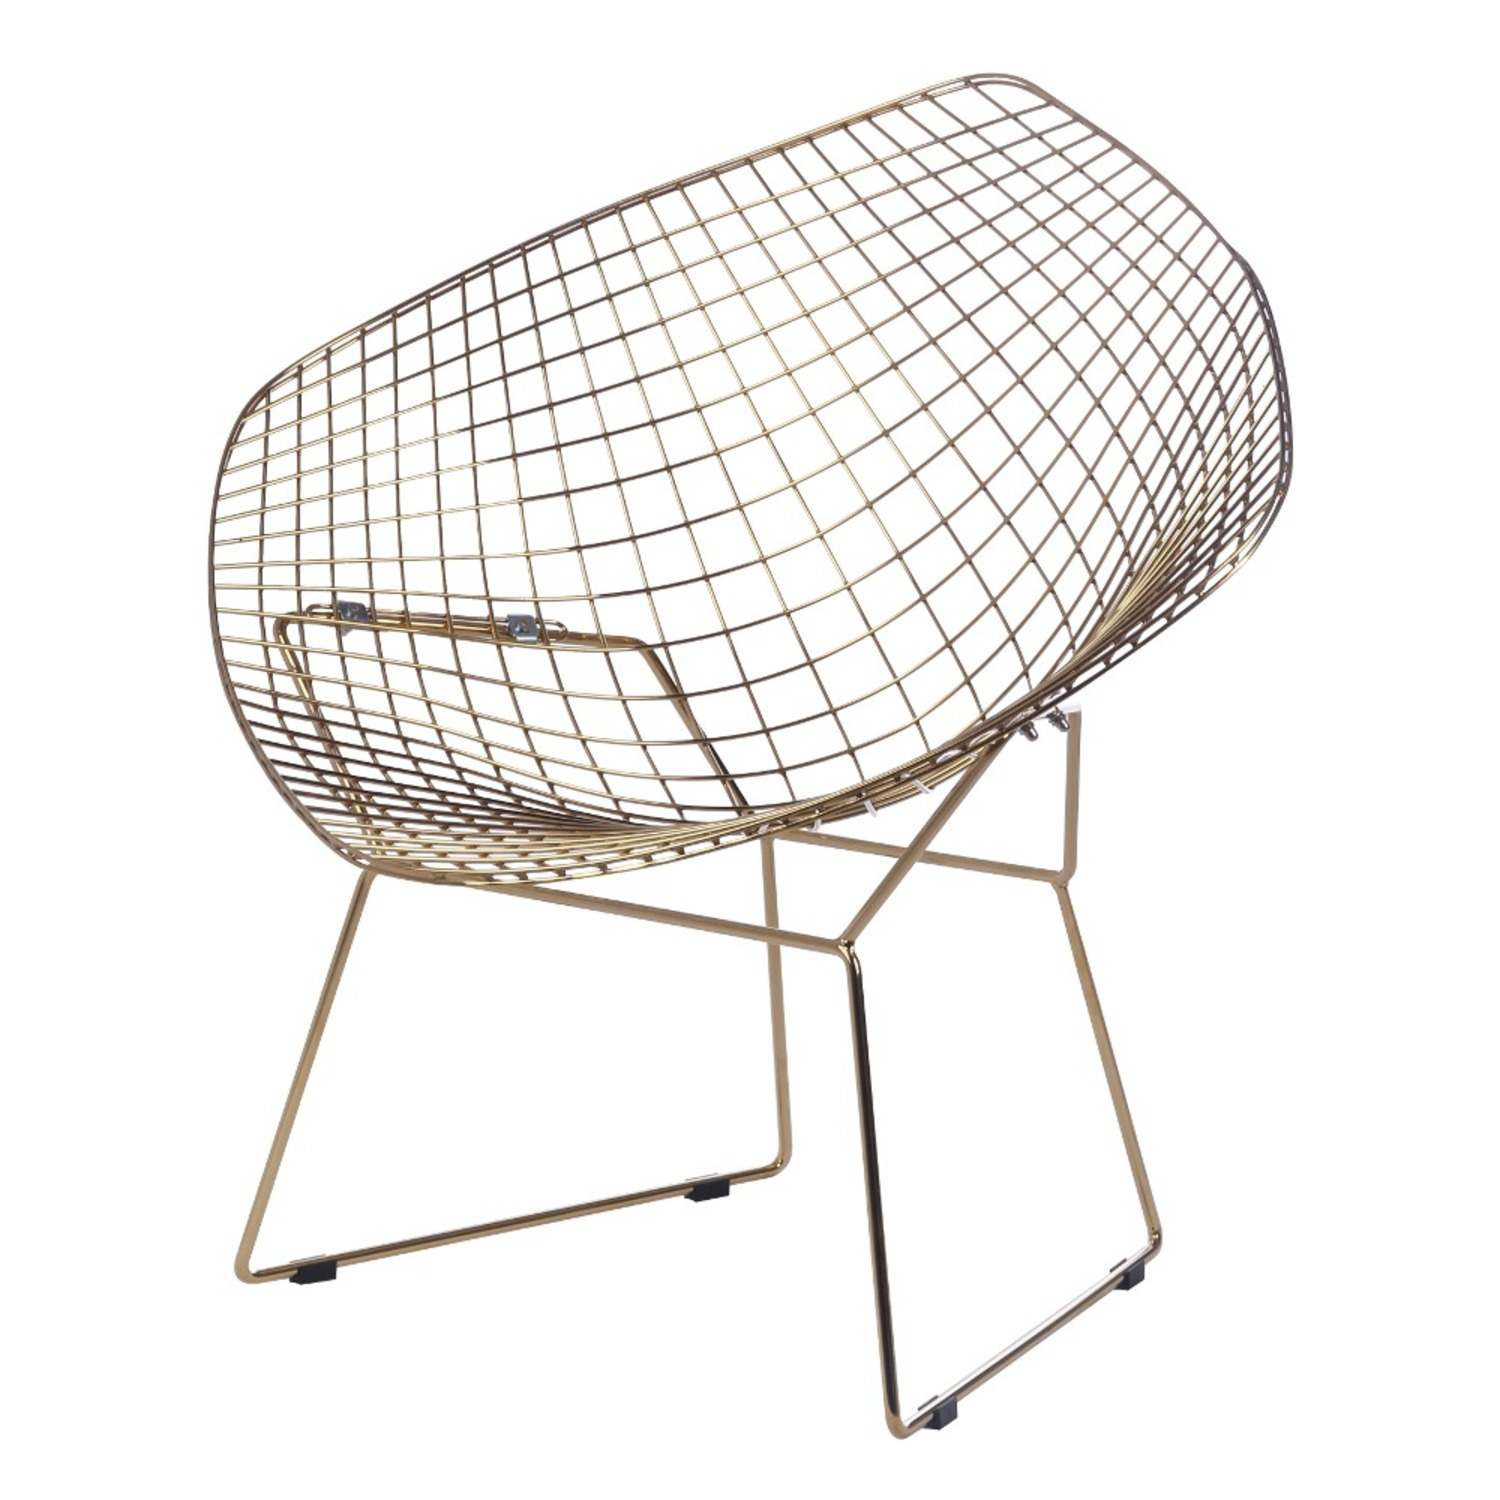 Diamond Chair In Gold Wire W/ Black Leatherette - image-2